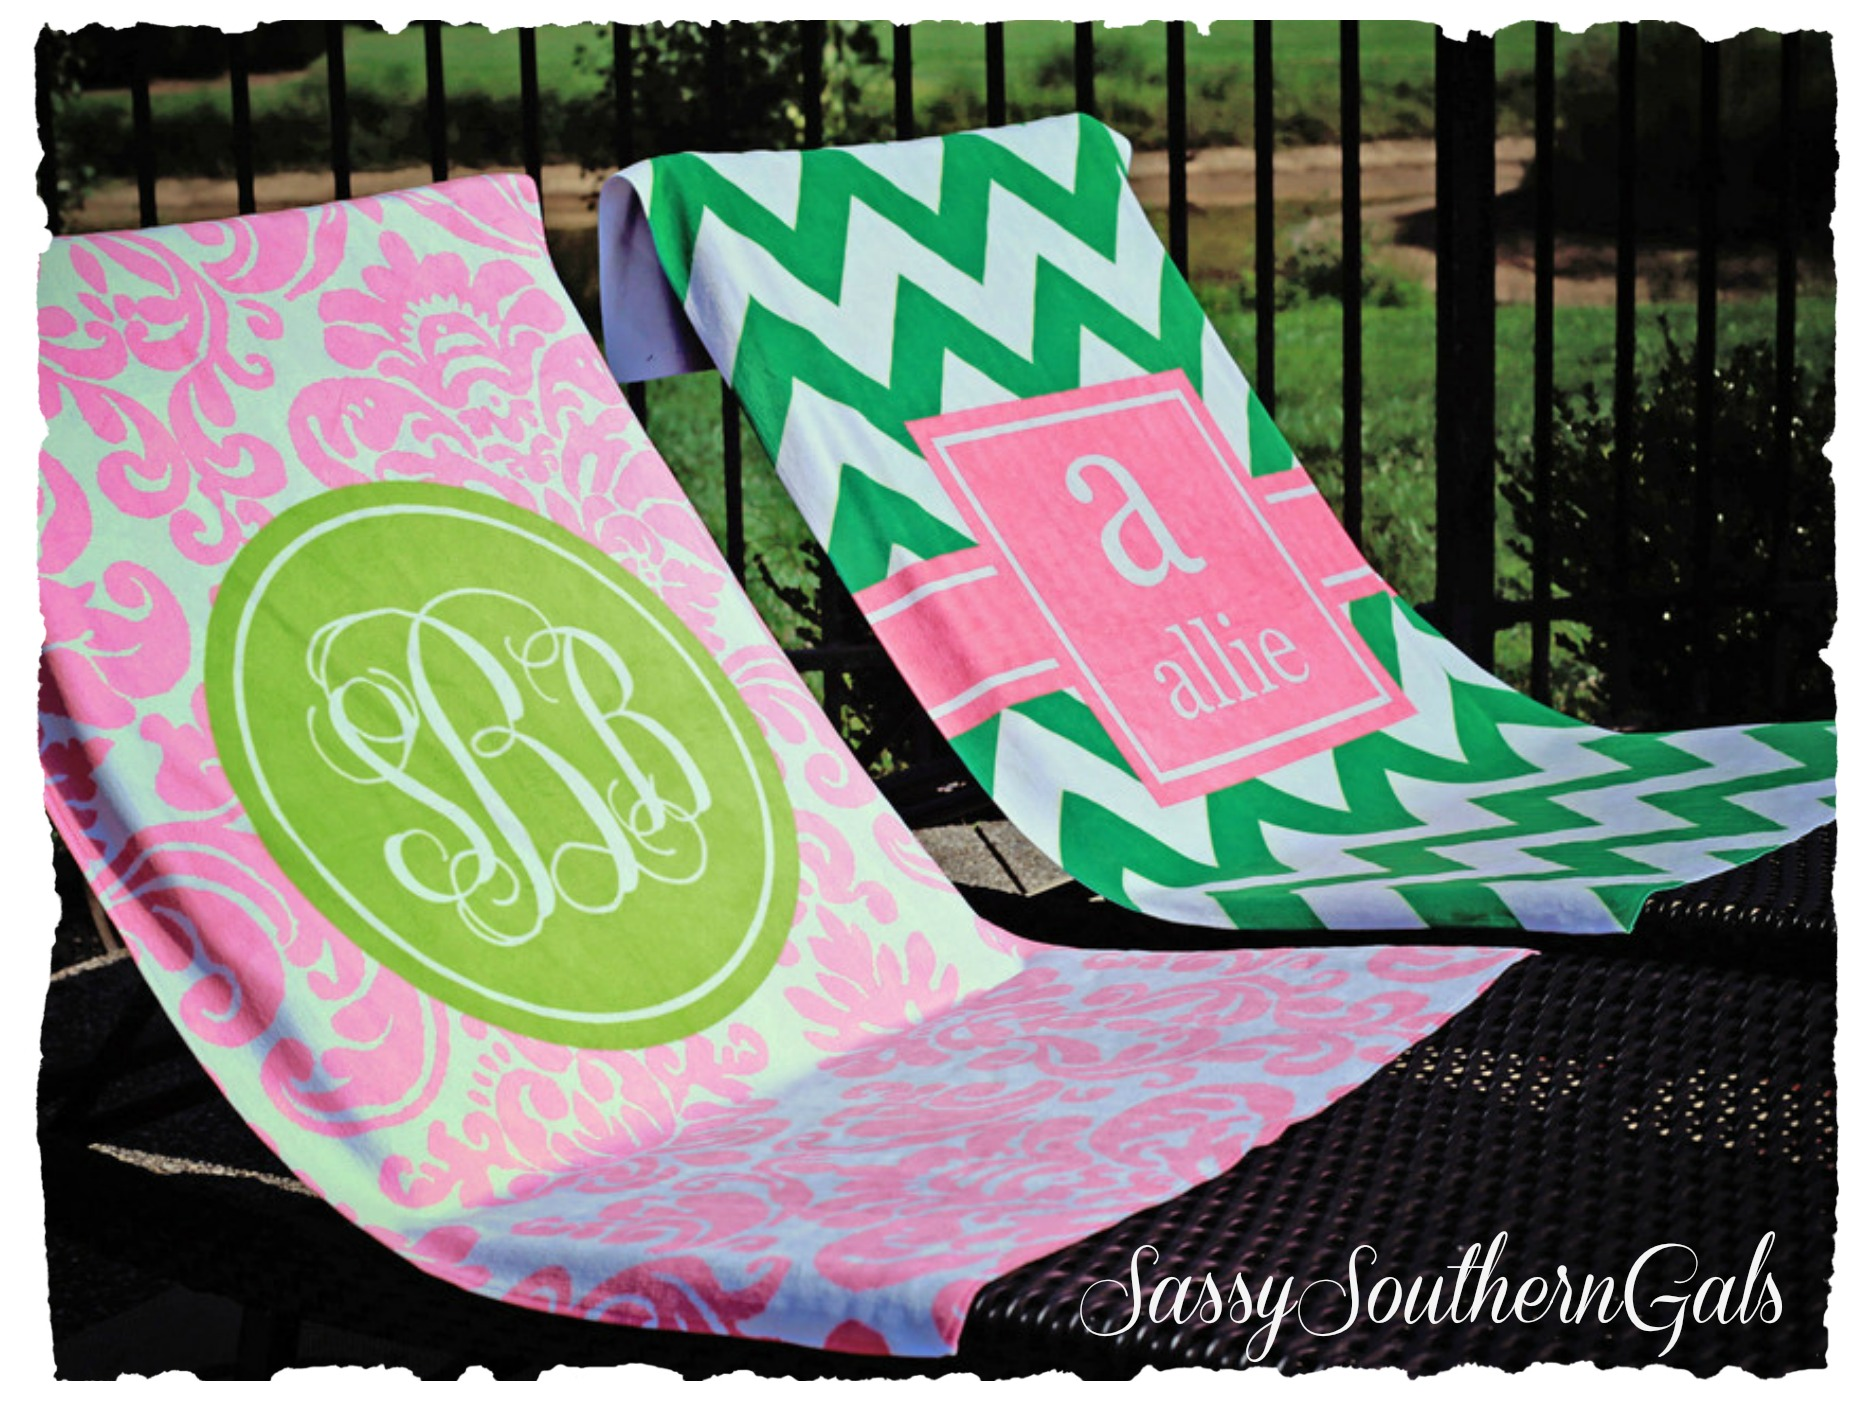 Amazing Monogrammed Beach Towels For Outdoor Ideas With Beach Towels Monogrammed